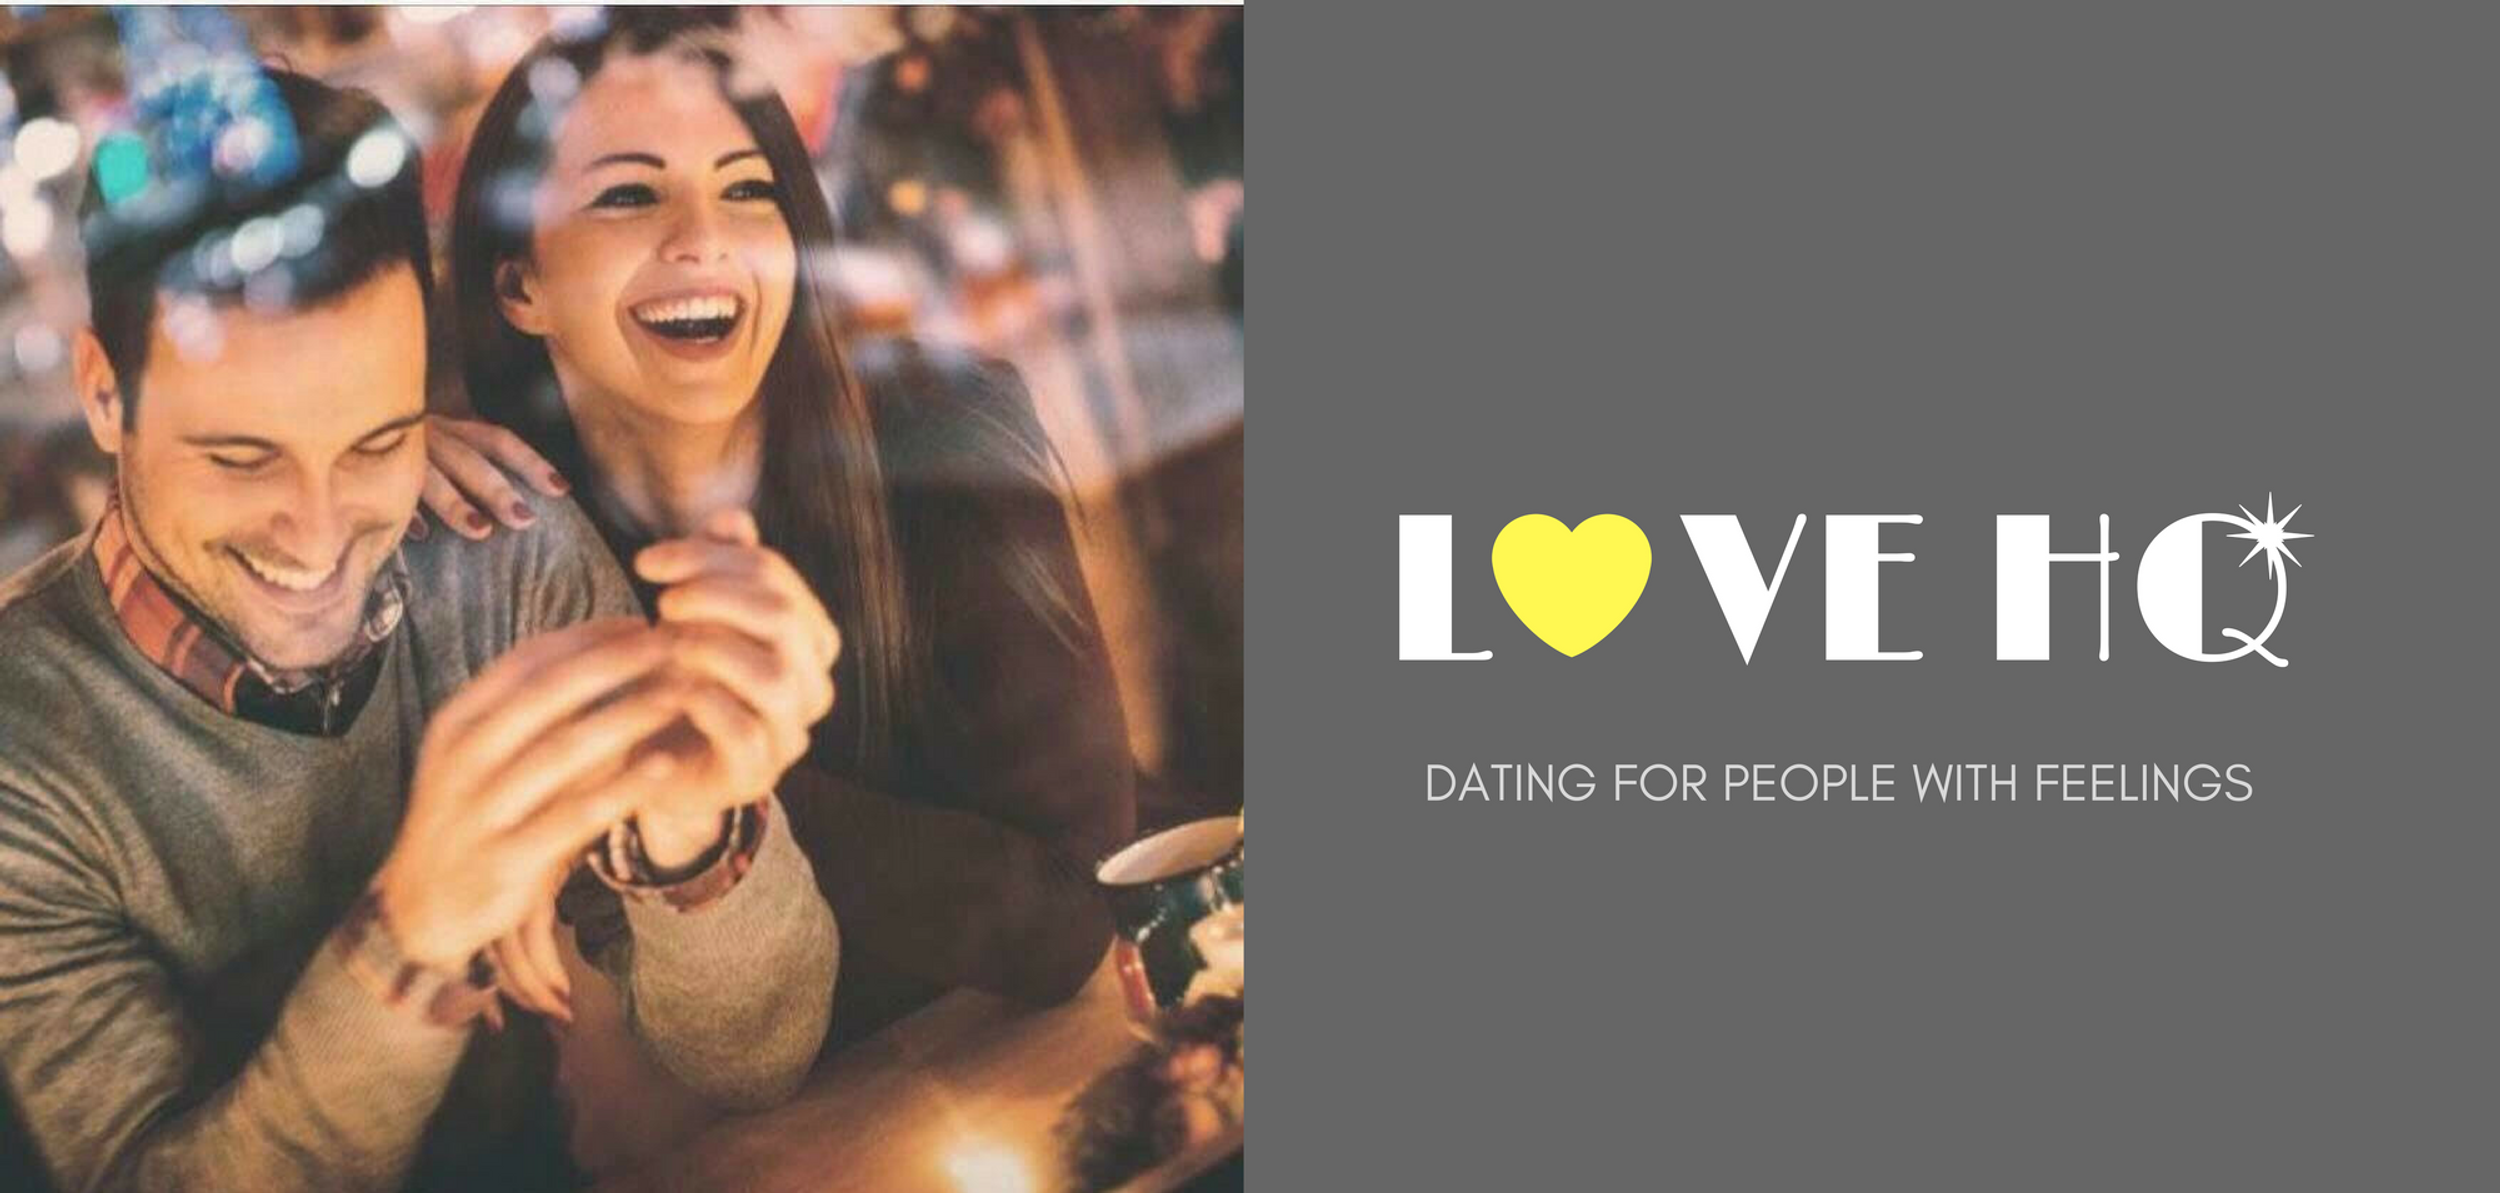 dating events in ireland